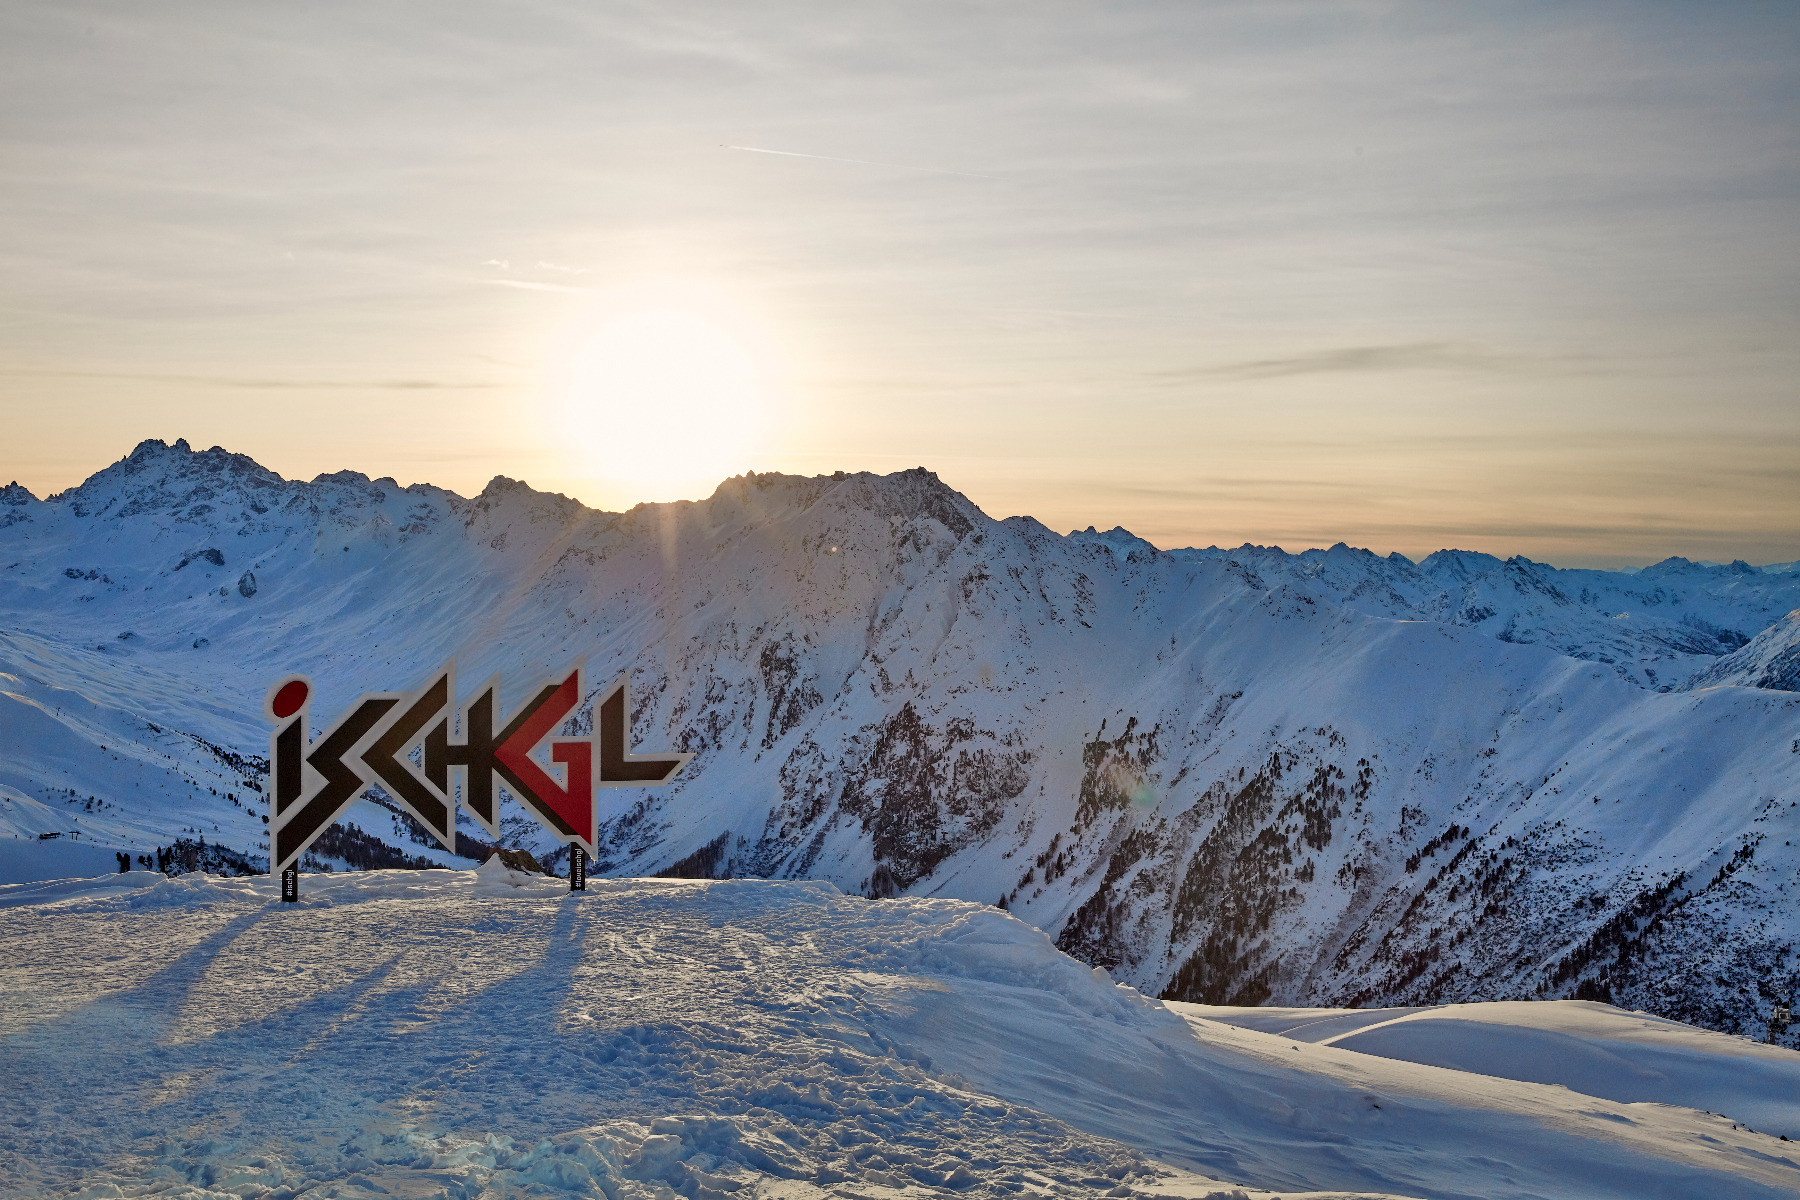 Ischgl is the first Austrian resort to announce early closure due to the Coronavirusundefined